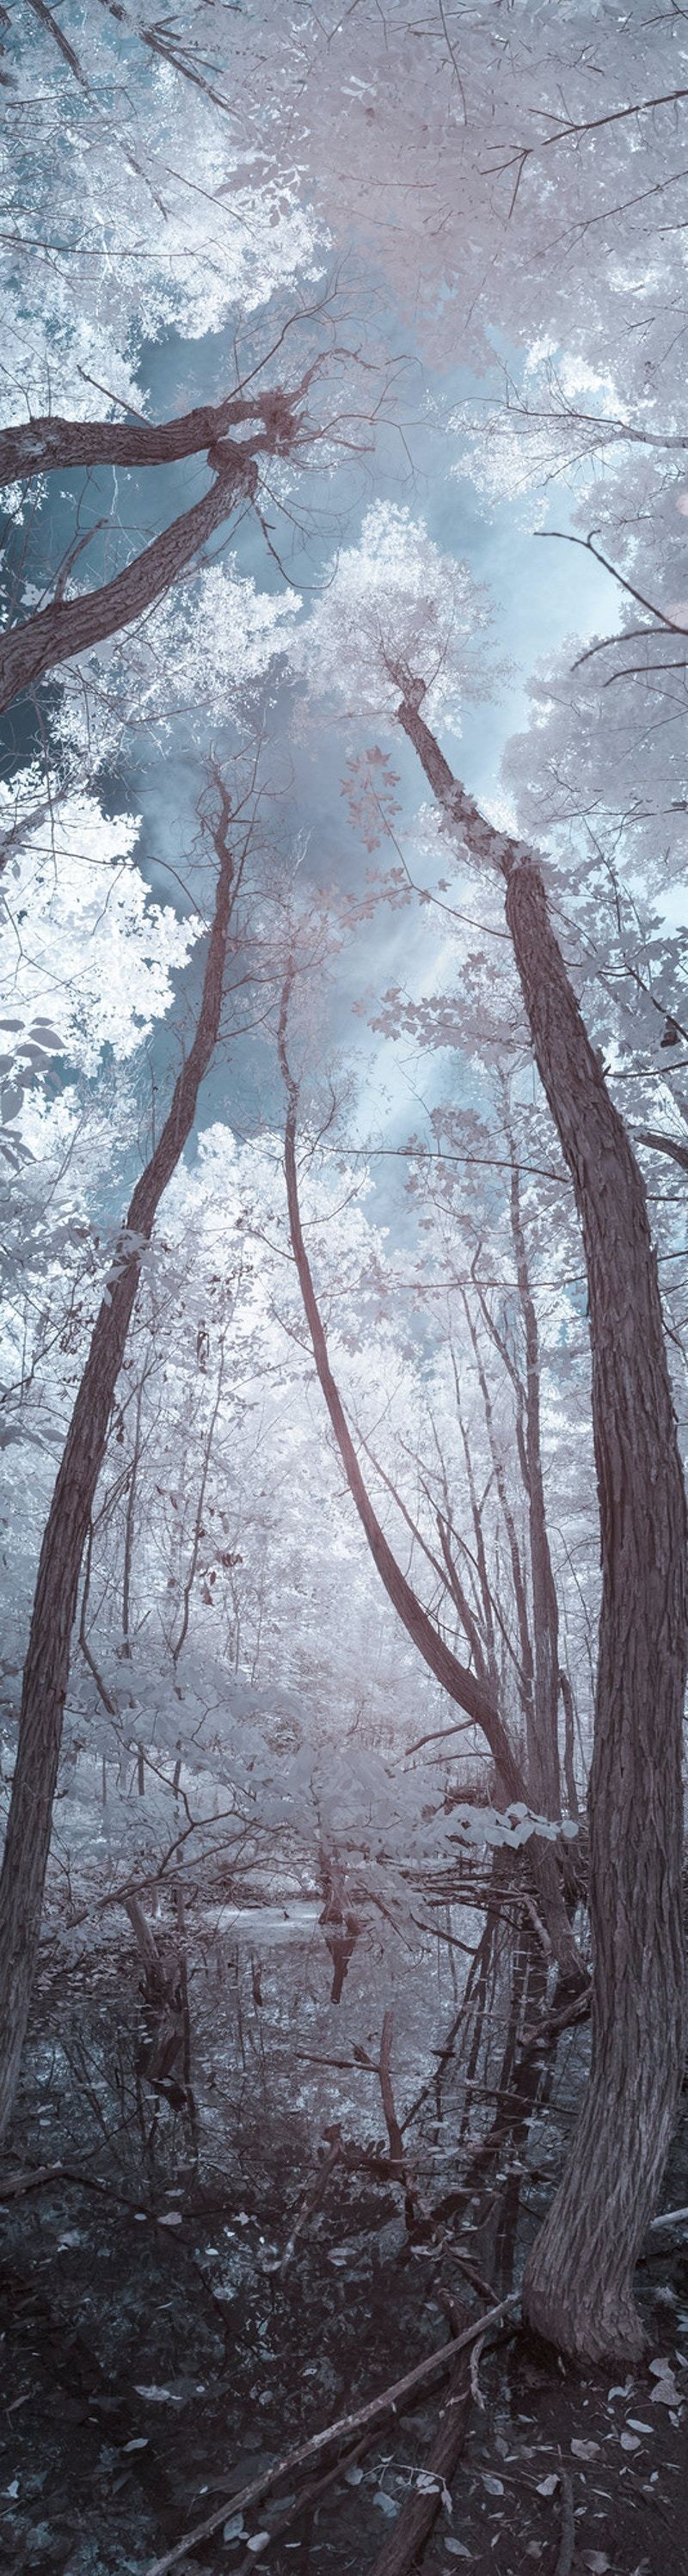 A Study In Infrared - Ethan Whitecotton Photography